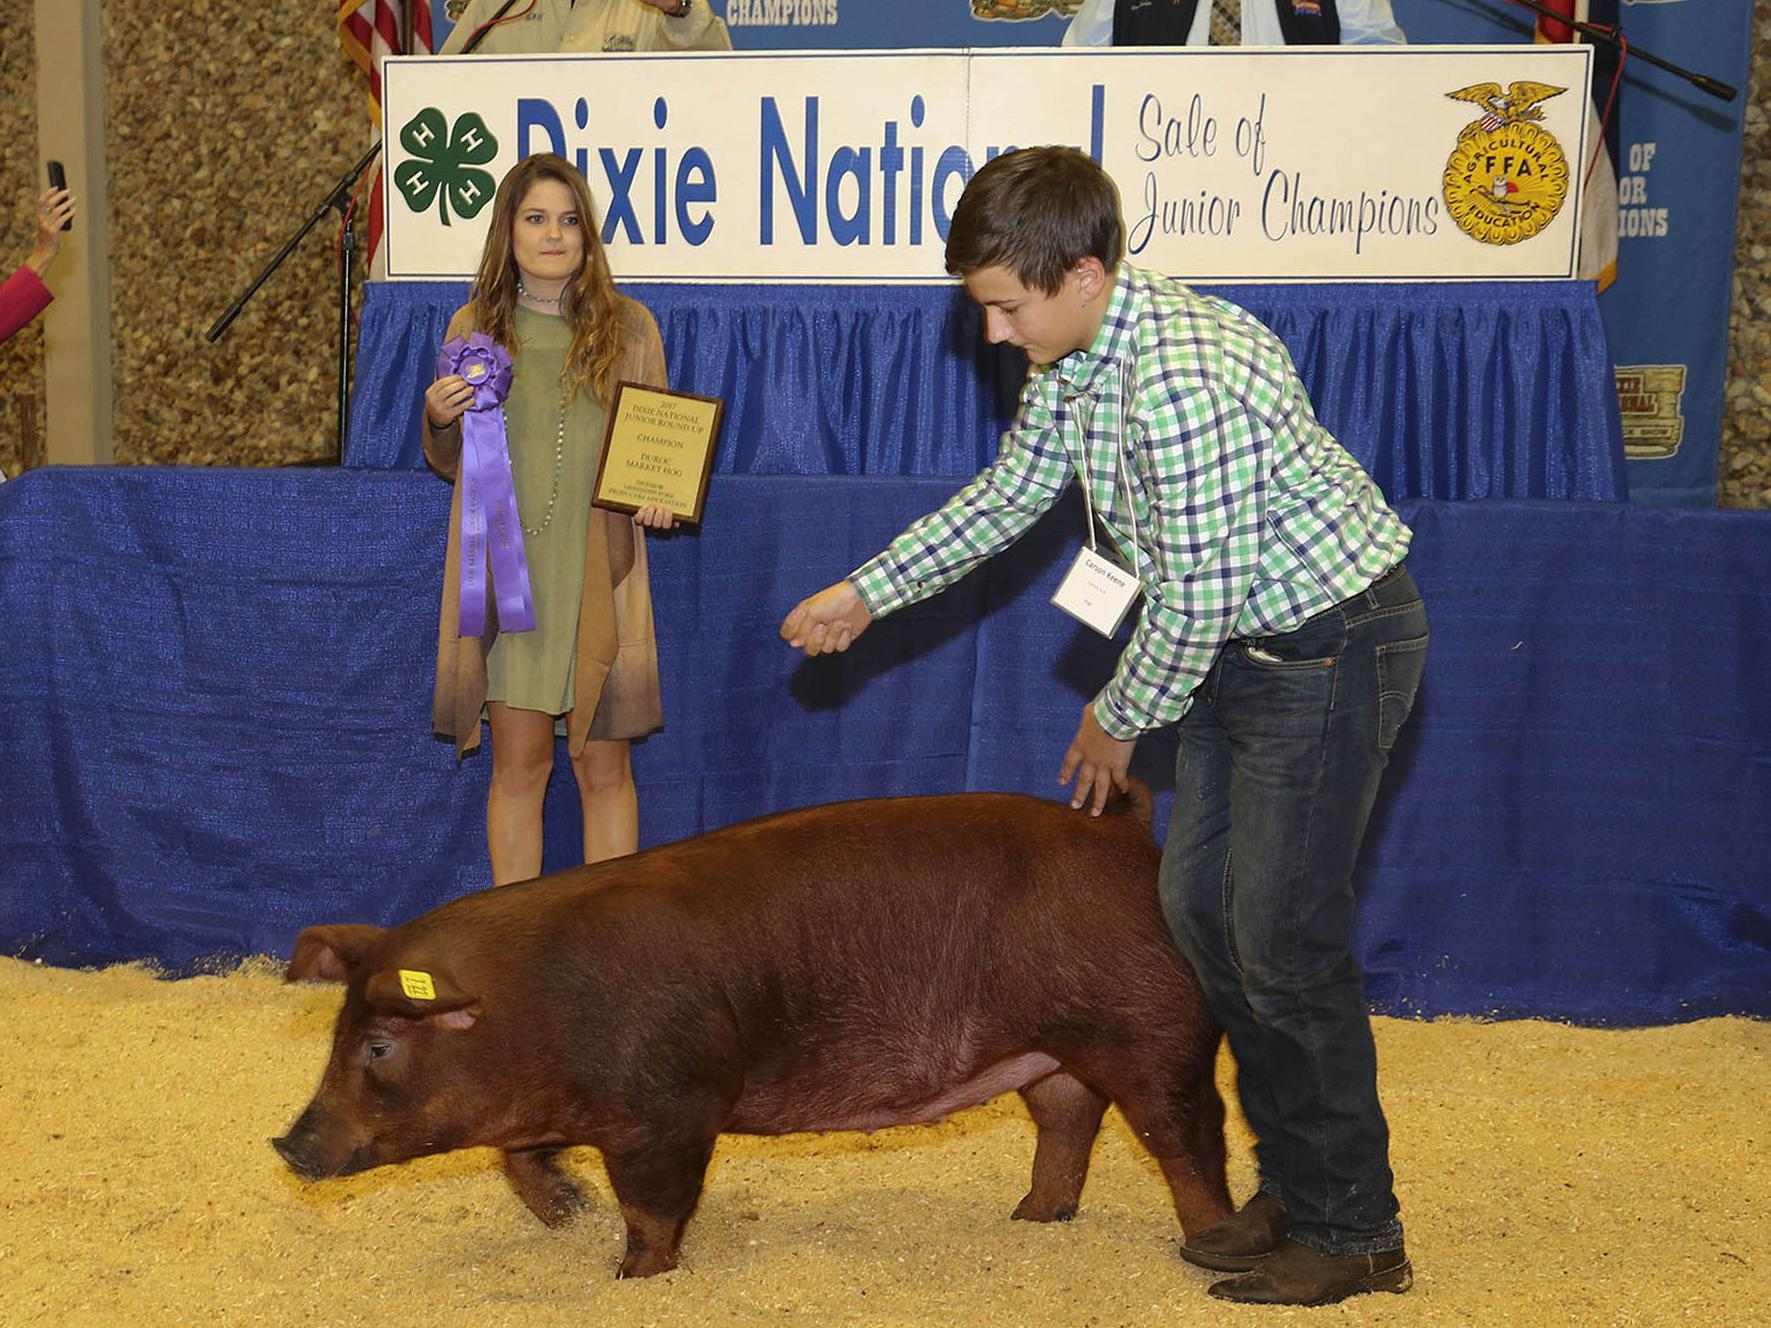 Twelve-year-old Carson Keene shows off his champion Duroc hog for bidders at the 2017 Dixie National Sale of Junior Champions Feb. 9, 2017, as his stepsister, Alexandra Pittman, looks on. (Photo courtesy of Jeff L. Homan)